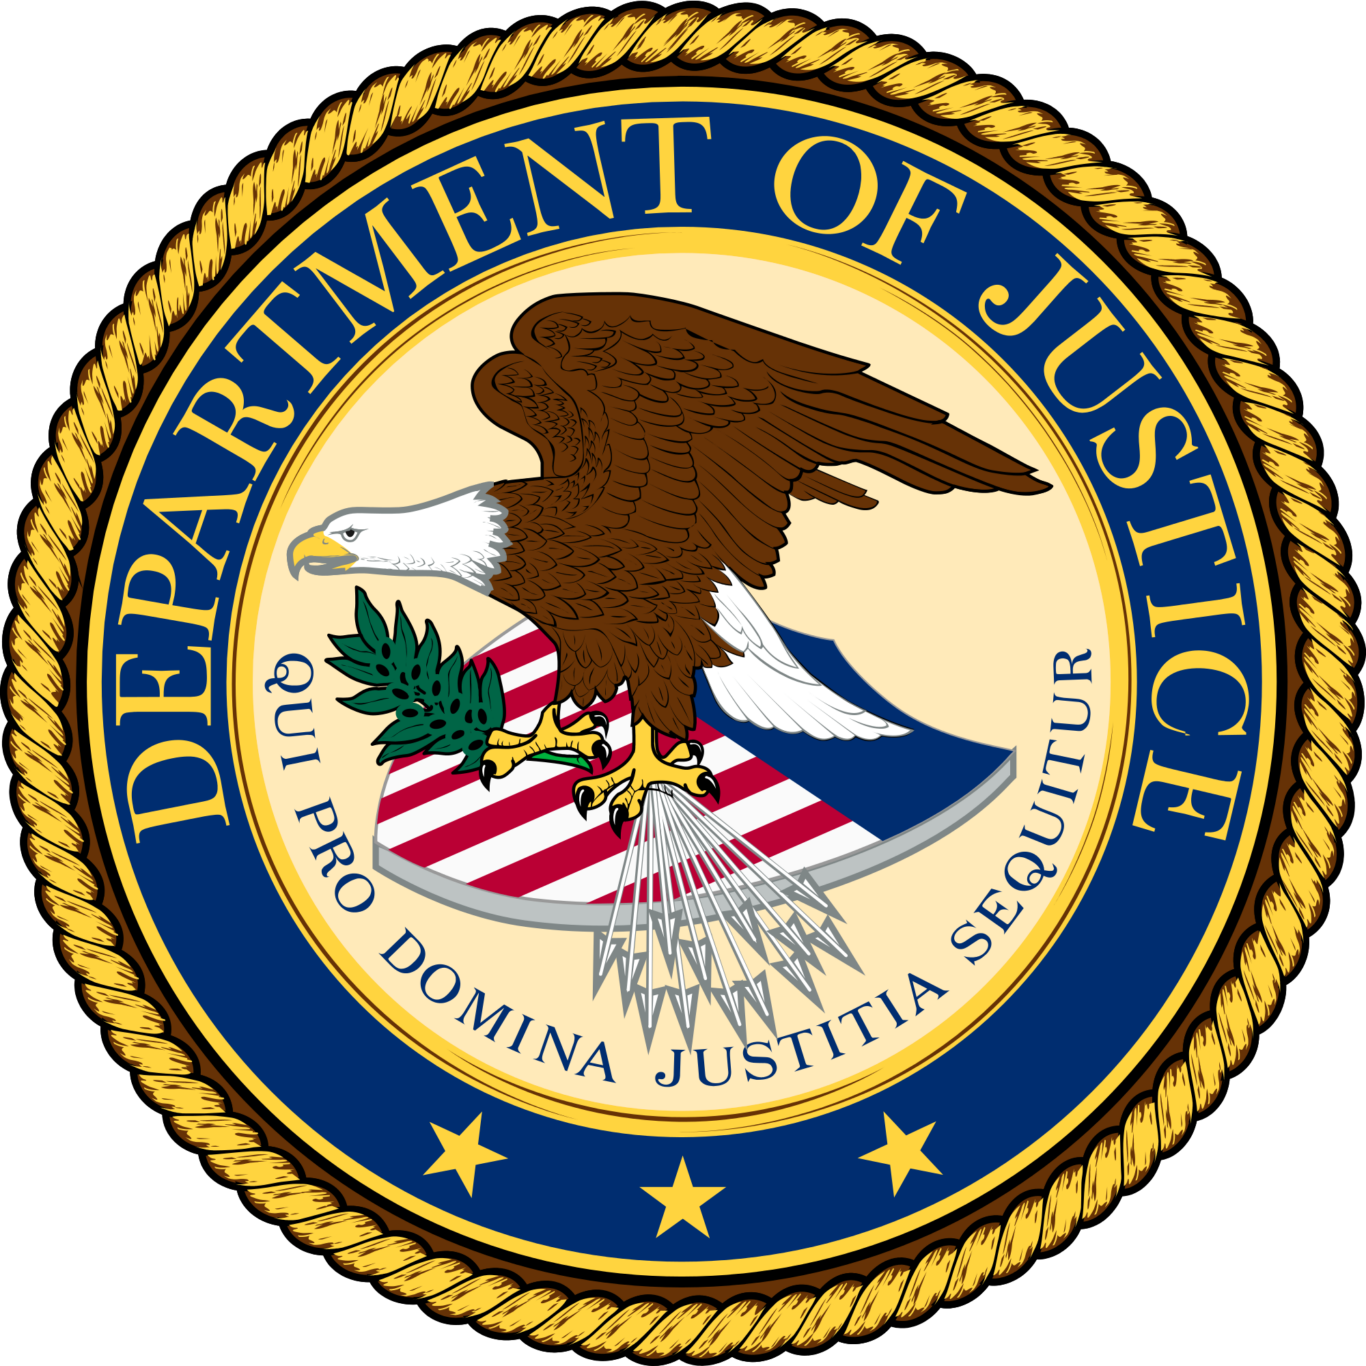 Department of Justice Emblem